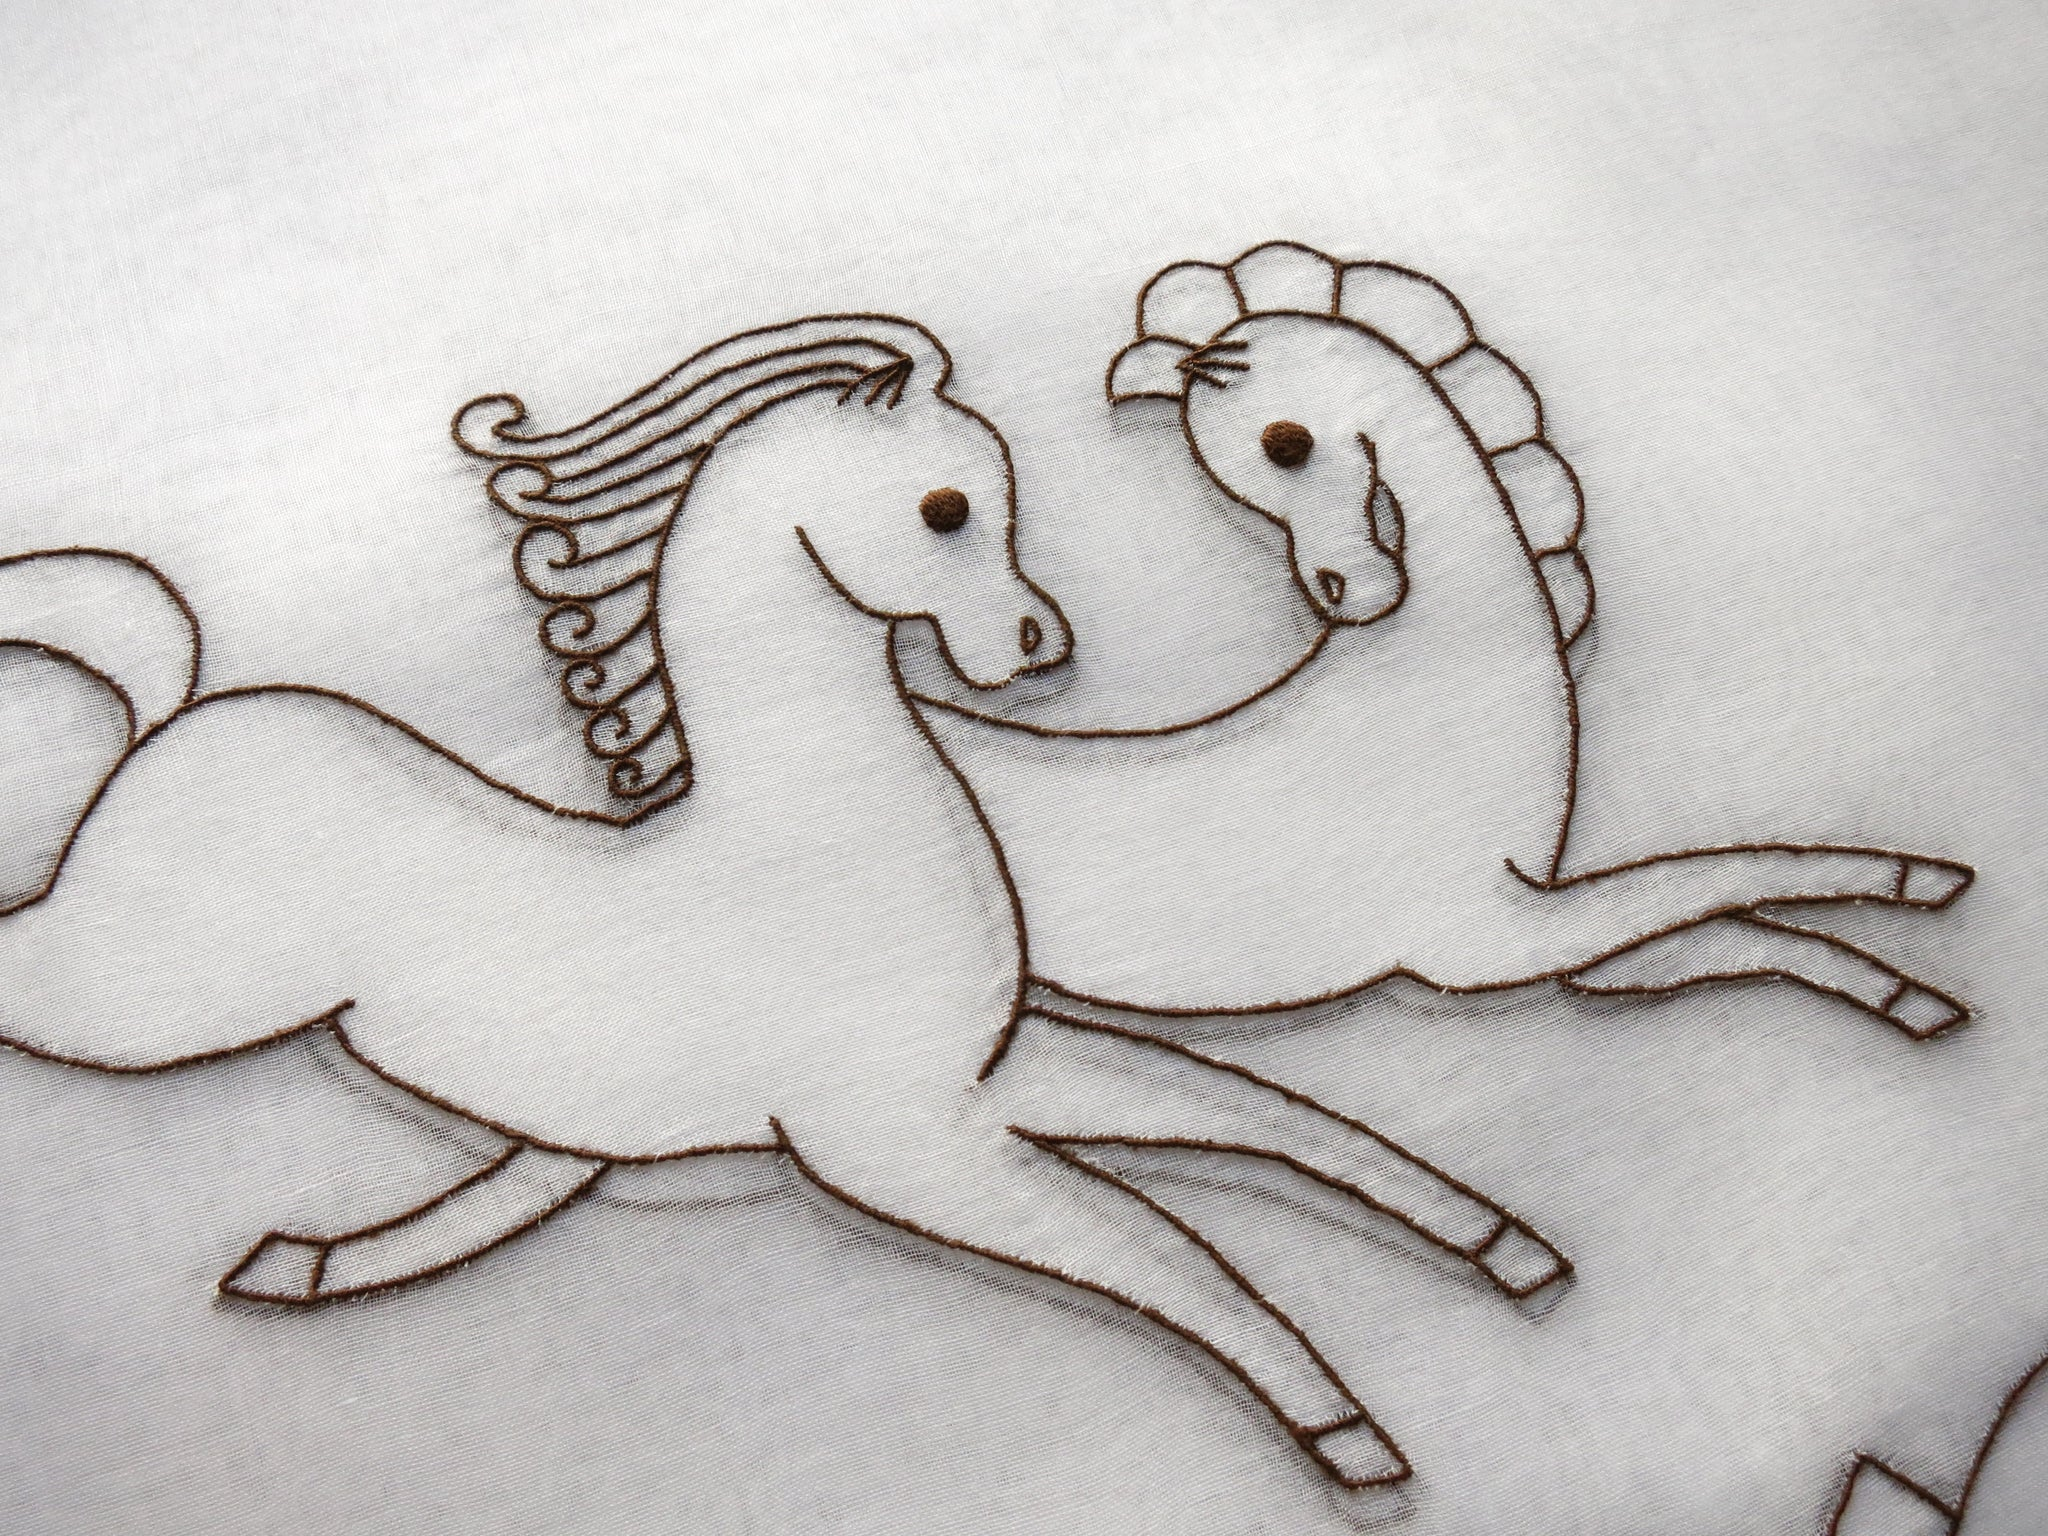 Art Deco C1930 Horses French Hand Embroidery 8 Organdy Placemats Run Things Most Delightful